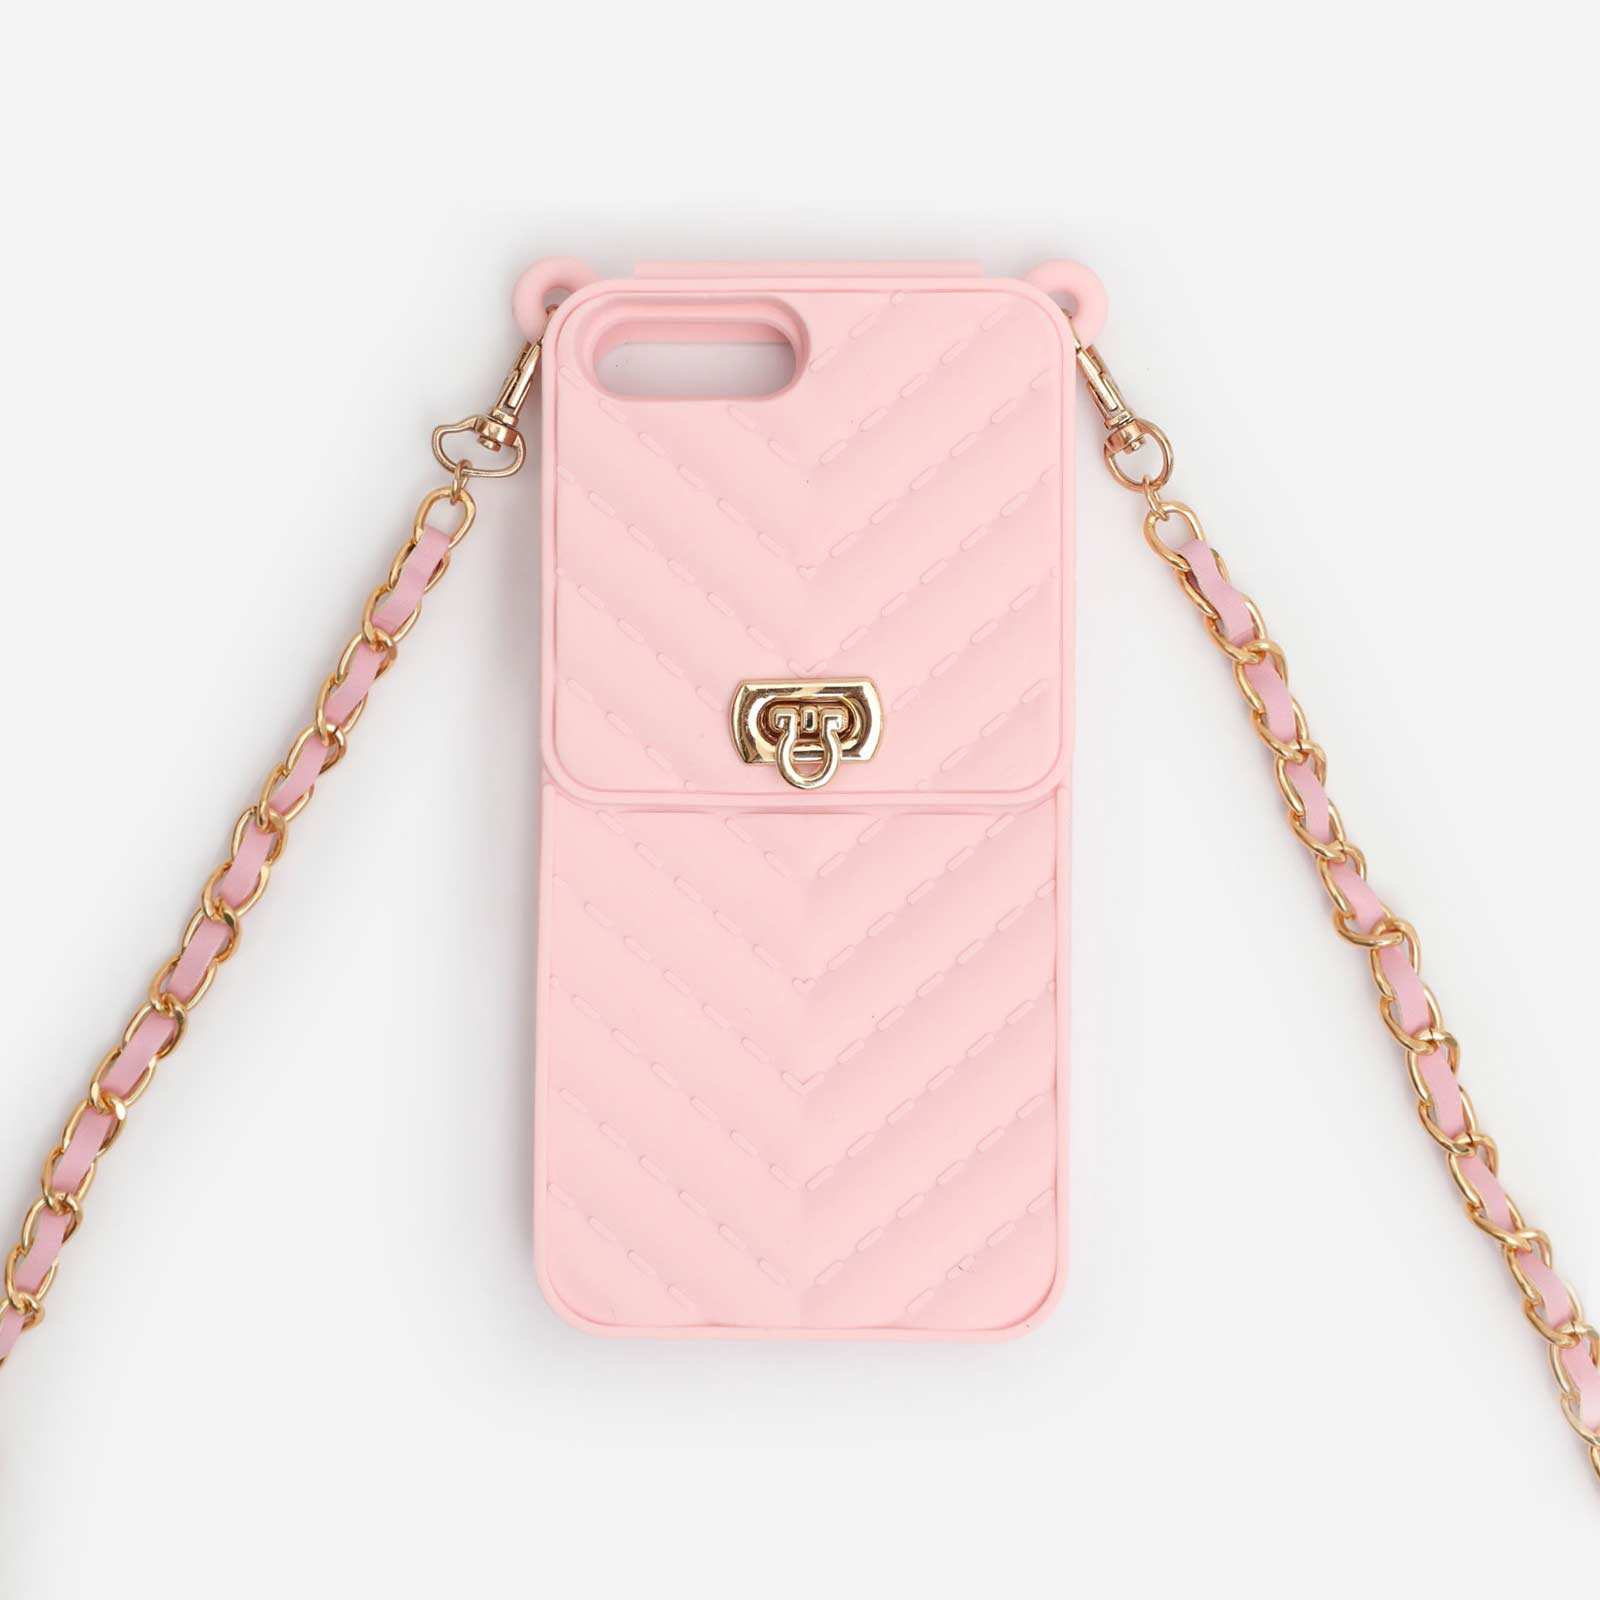 Buckle Detail Quilted Chain Phonecase In Pink. iPhone 7 Plus and 8 Plus